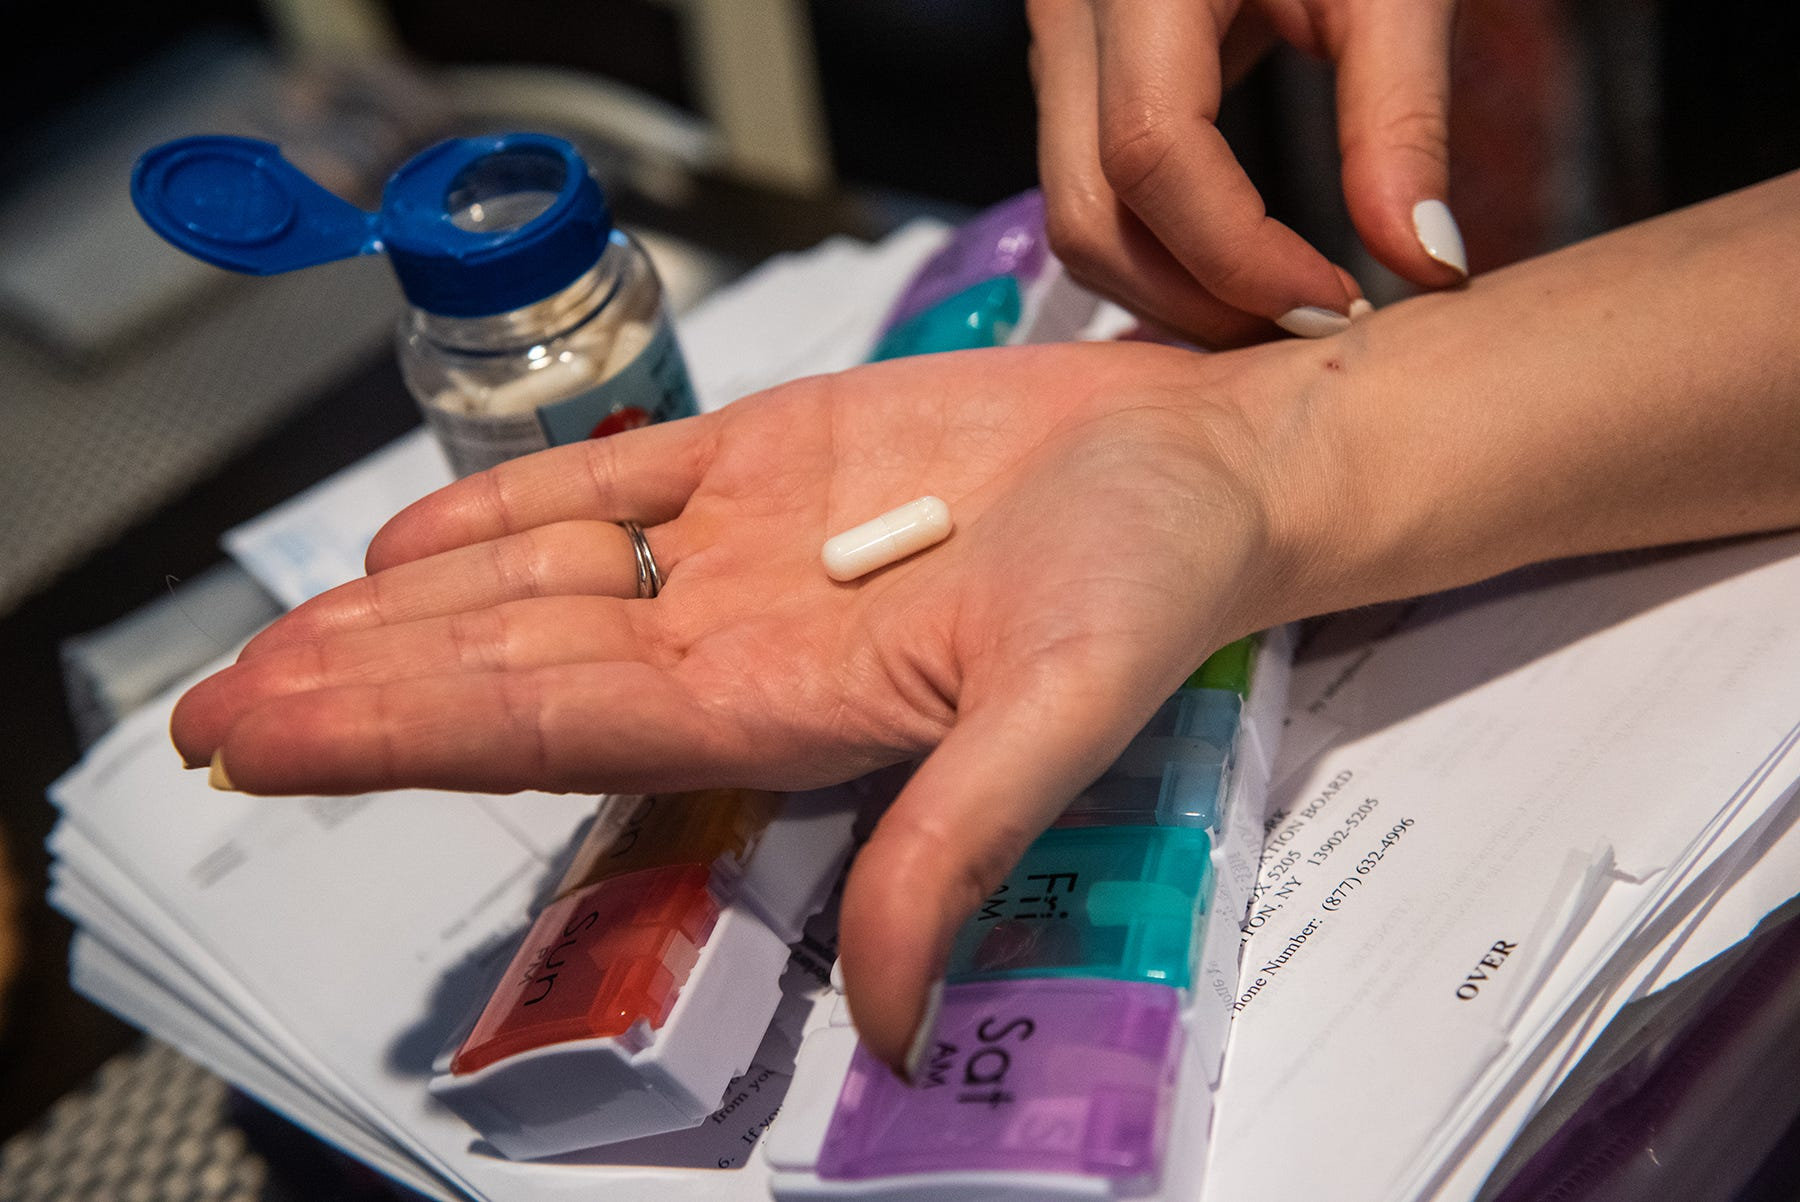 Caitlin Barber shows a salt pill at her home in Saugerties, NY on Wednesday, July 28, 2021. Barber caught COVID-19 while working at a nursing home in 2019, she has recently been diagnosed with POTS, and has to take up to 10,000mg of salt a day to manage her condition. Kelly Marsh/For the Times Herald-Record